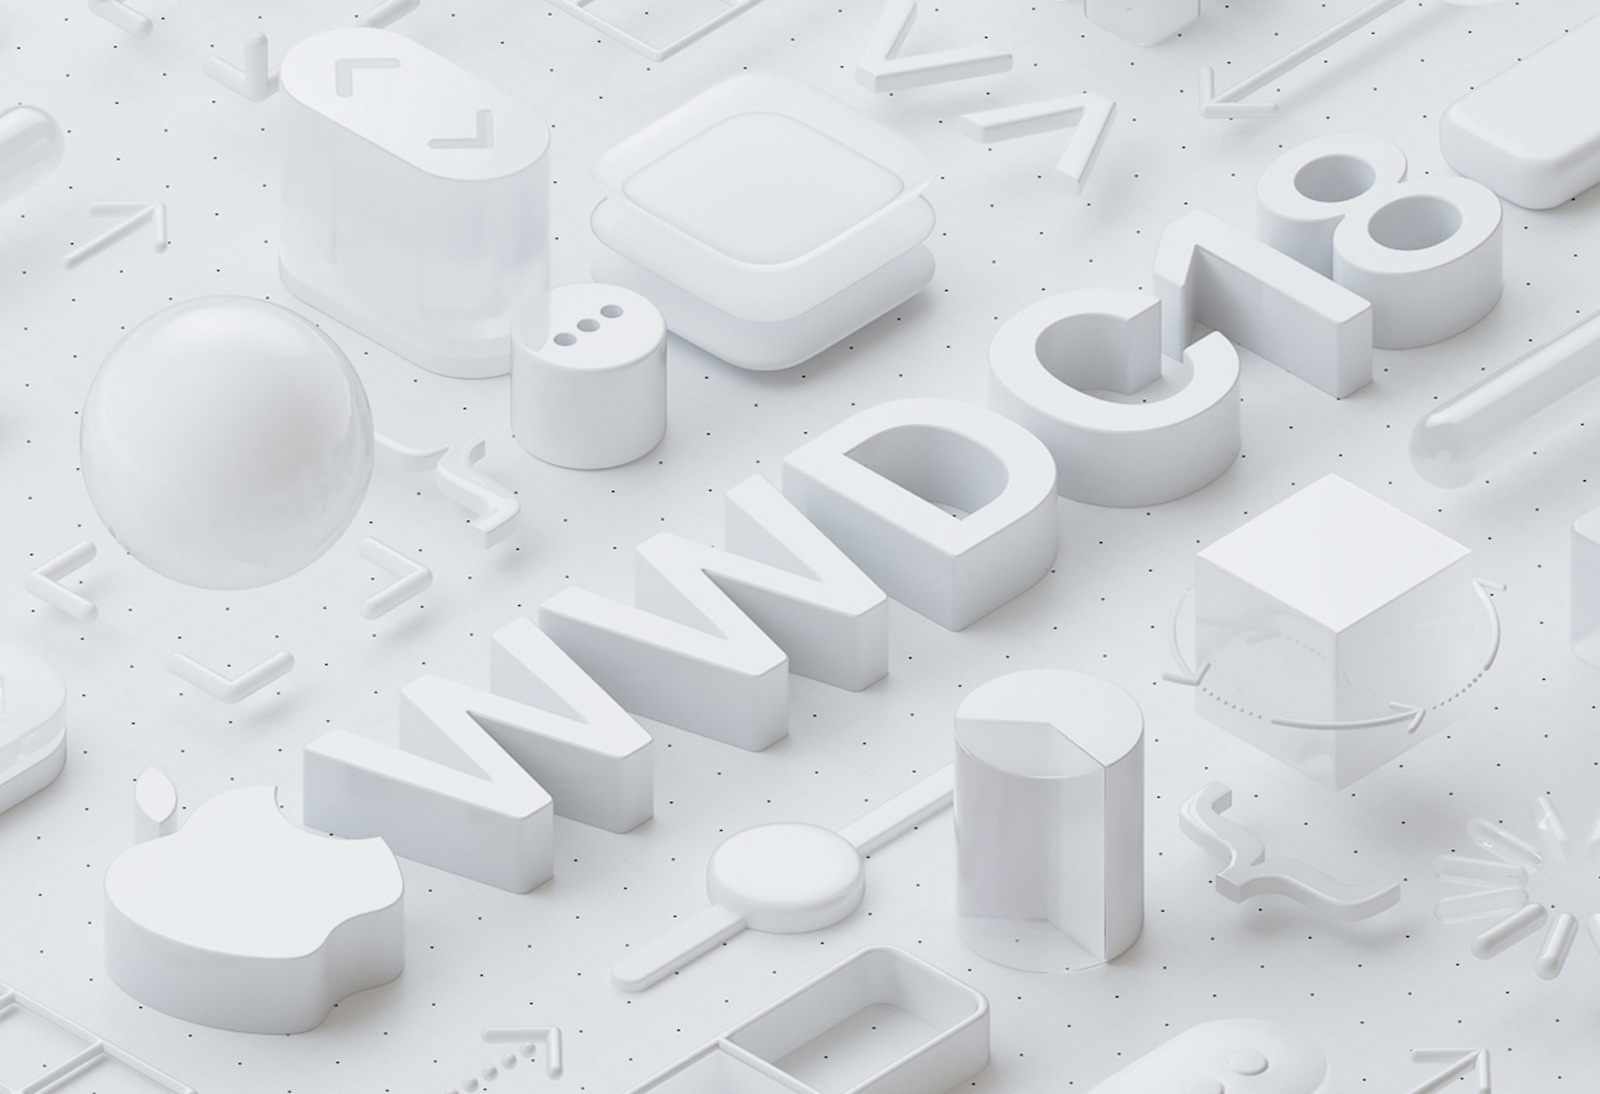 Apple WWDC event: What to expect?